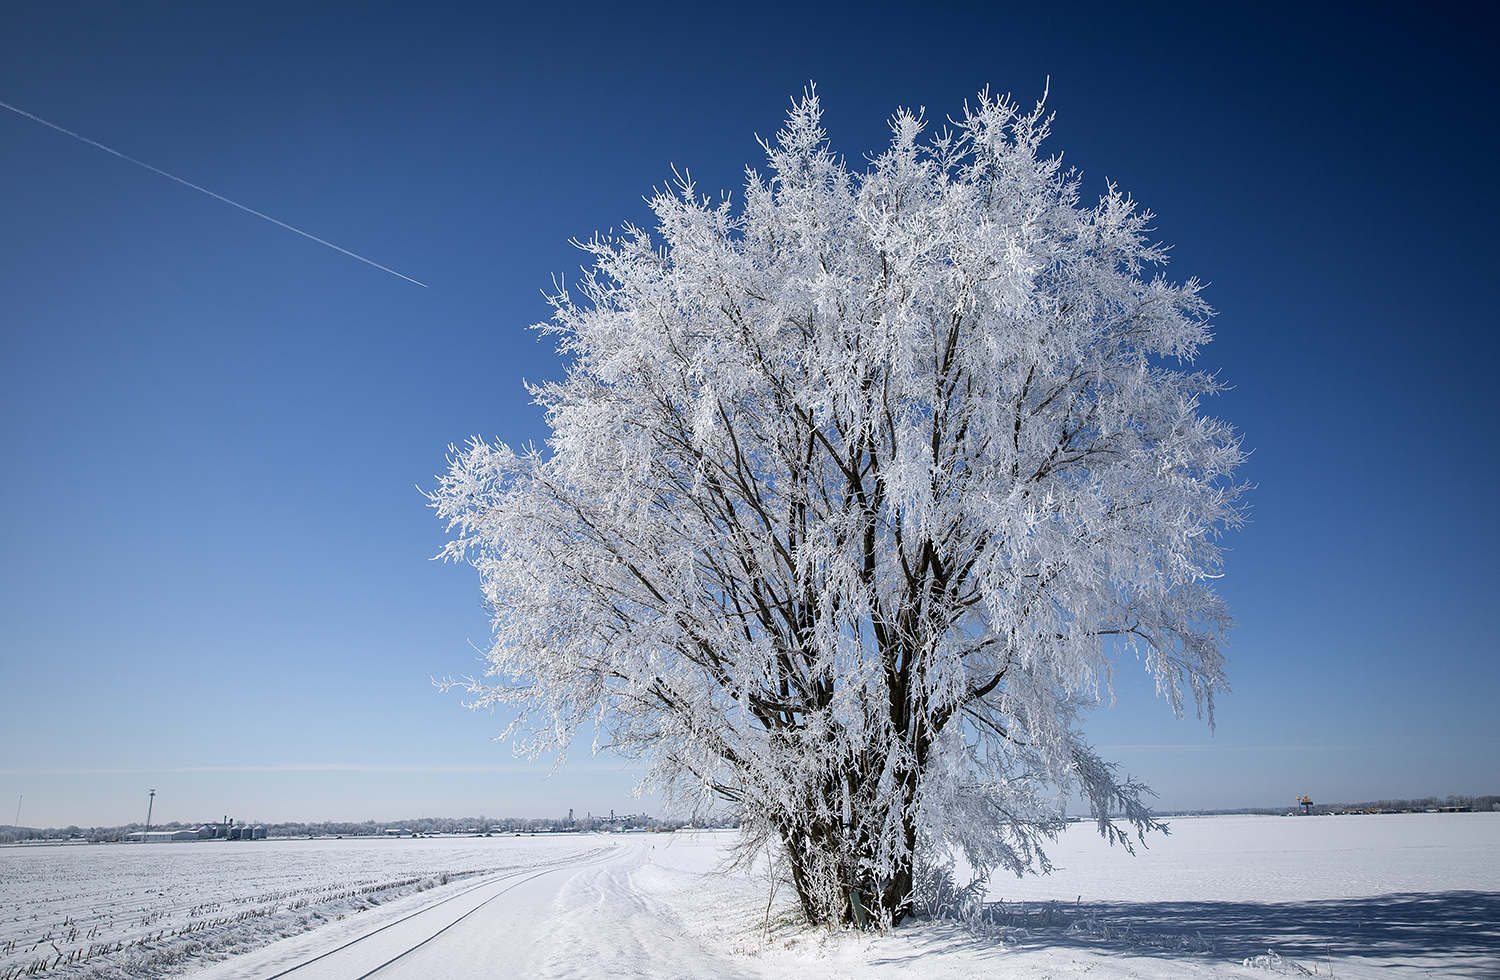 A snow-coated landscape stands in stark contrast to a blue sky near Williamsville, Ill. Monday, April 2, 2018, a day after a swath of winter weather left 6- 8 inches of snow across a portion of central Illinois. [Rich Saal/The State Journal-Register]